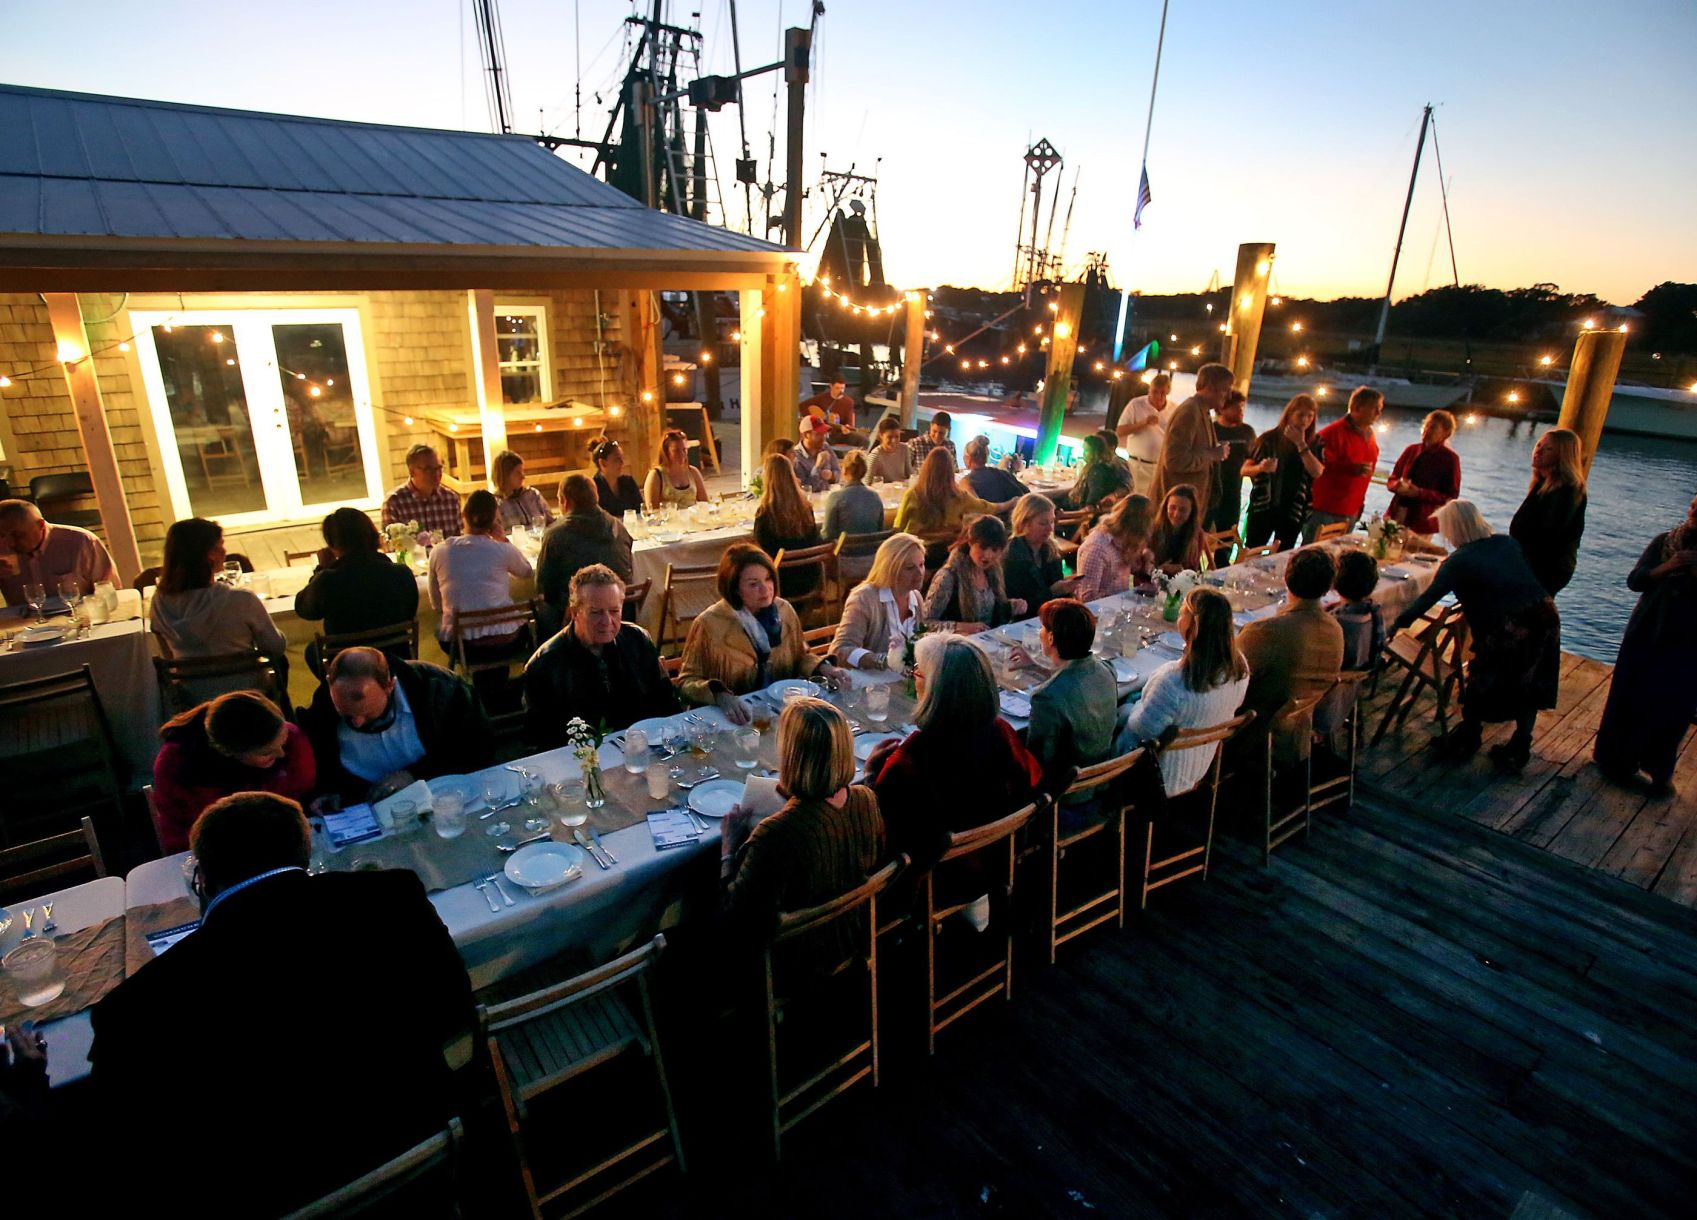 Commune Supper Club held an event at the Geechie Seafood dock on Shem Creek in Mount Pleasant featuring fish caught by Mark Marhefka and the meal created by Chefs Michelle Weaver and Lauren Mitterer. Image via postandcourier.com: Grace Beahm/Staff